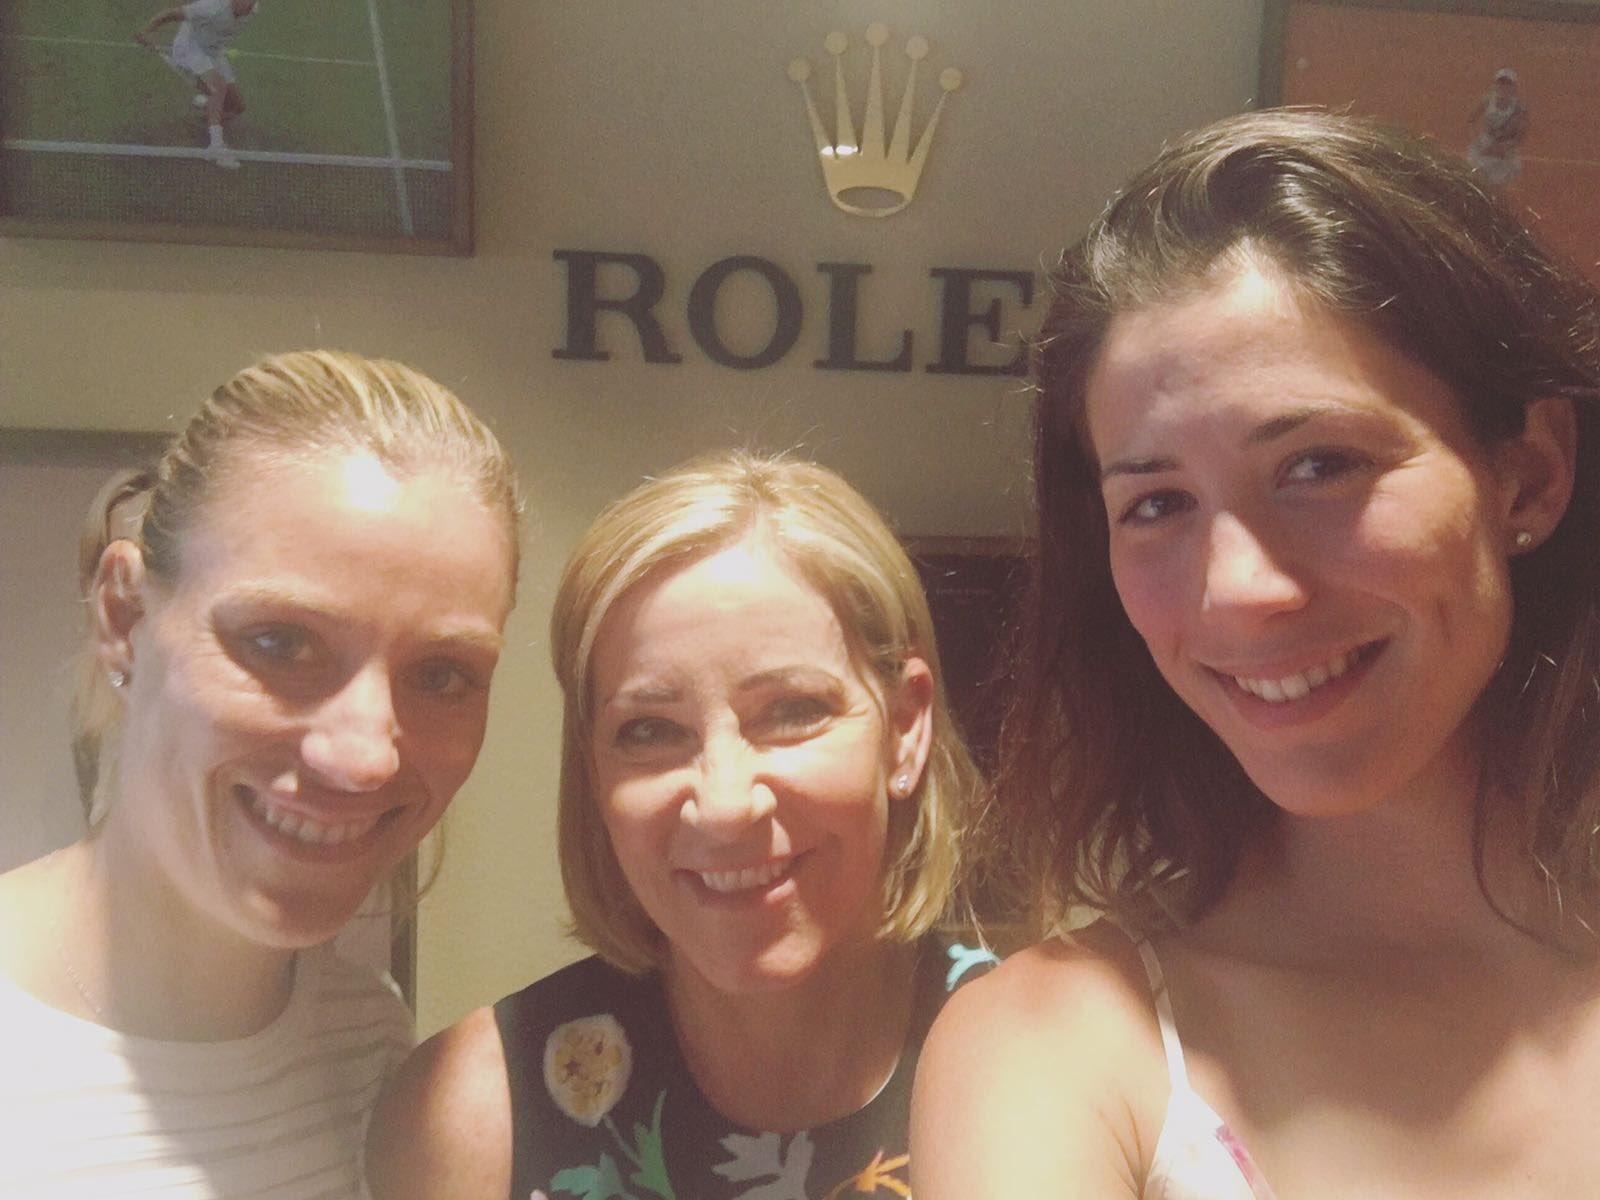 Inspiring afternoon with these two great ladies! @AngeliqueKerber @ChrissieEvert #EveryRolexTellsAStory https://t.co/TKD0a1GRqR